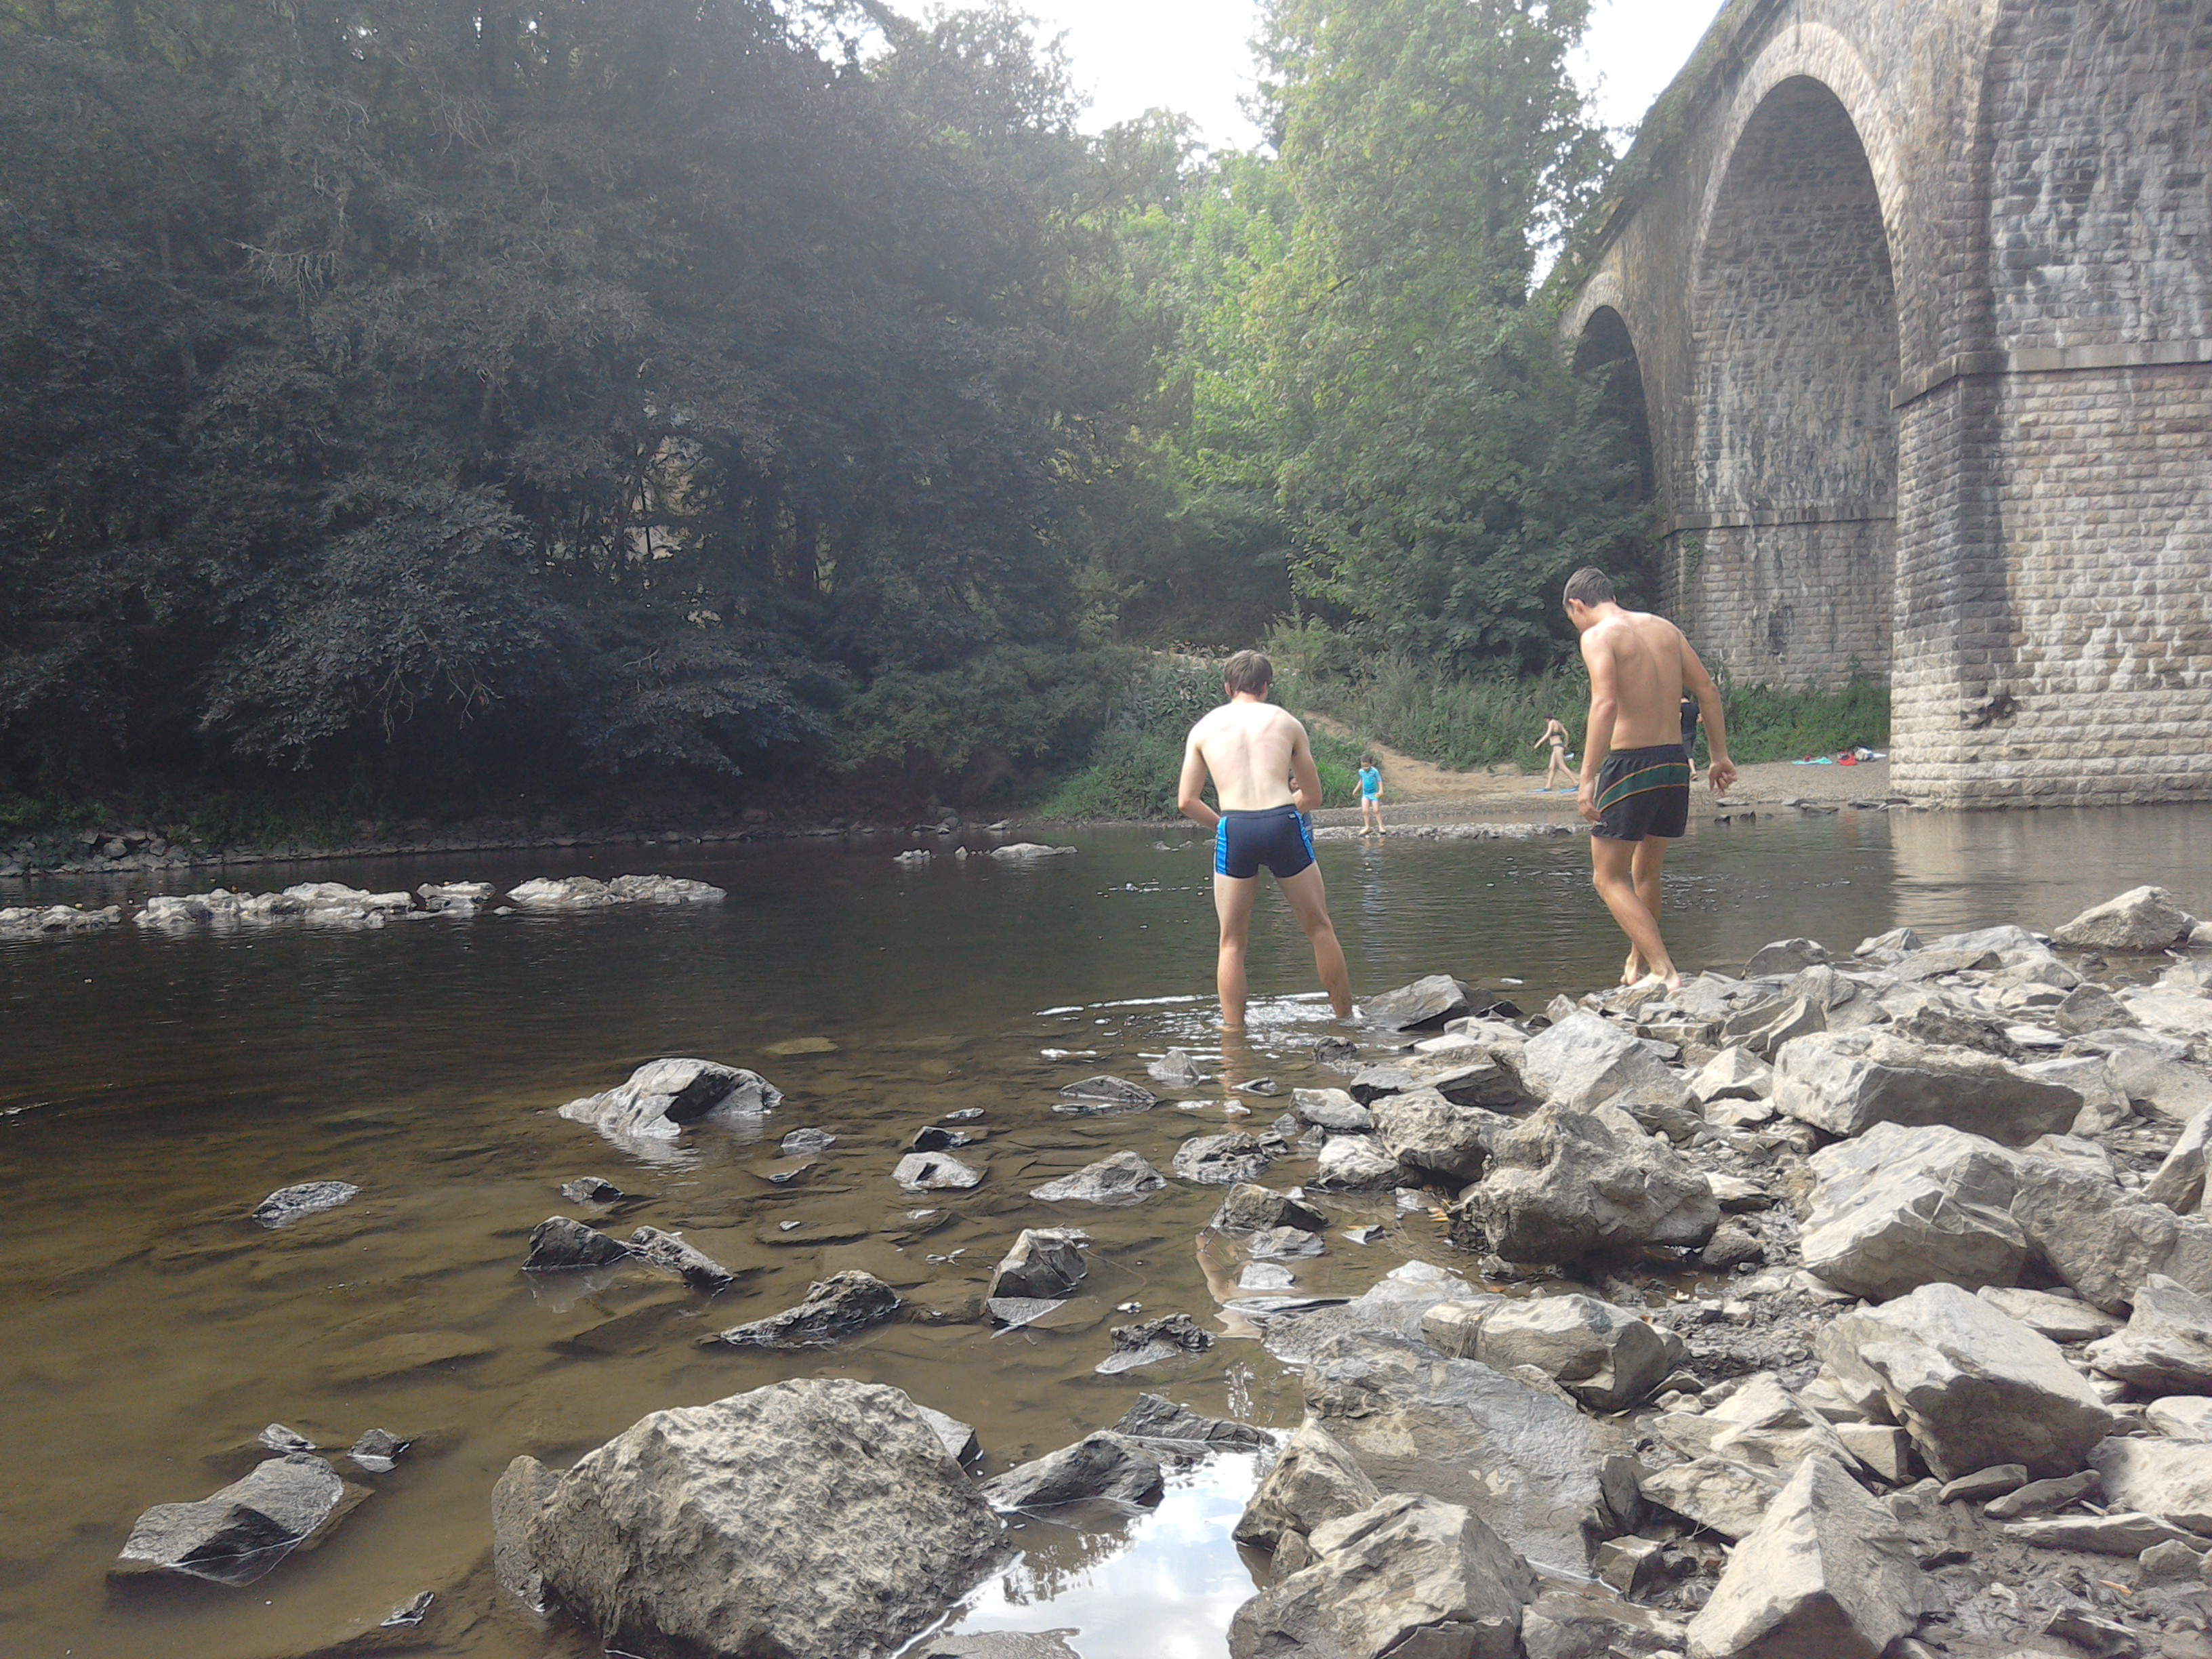 River swimming on the Orne, Normandy, France